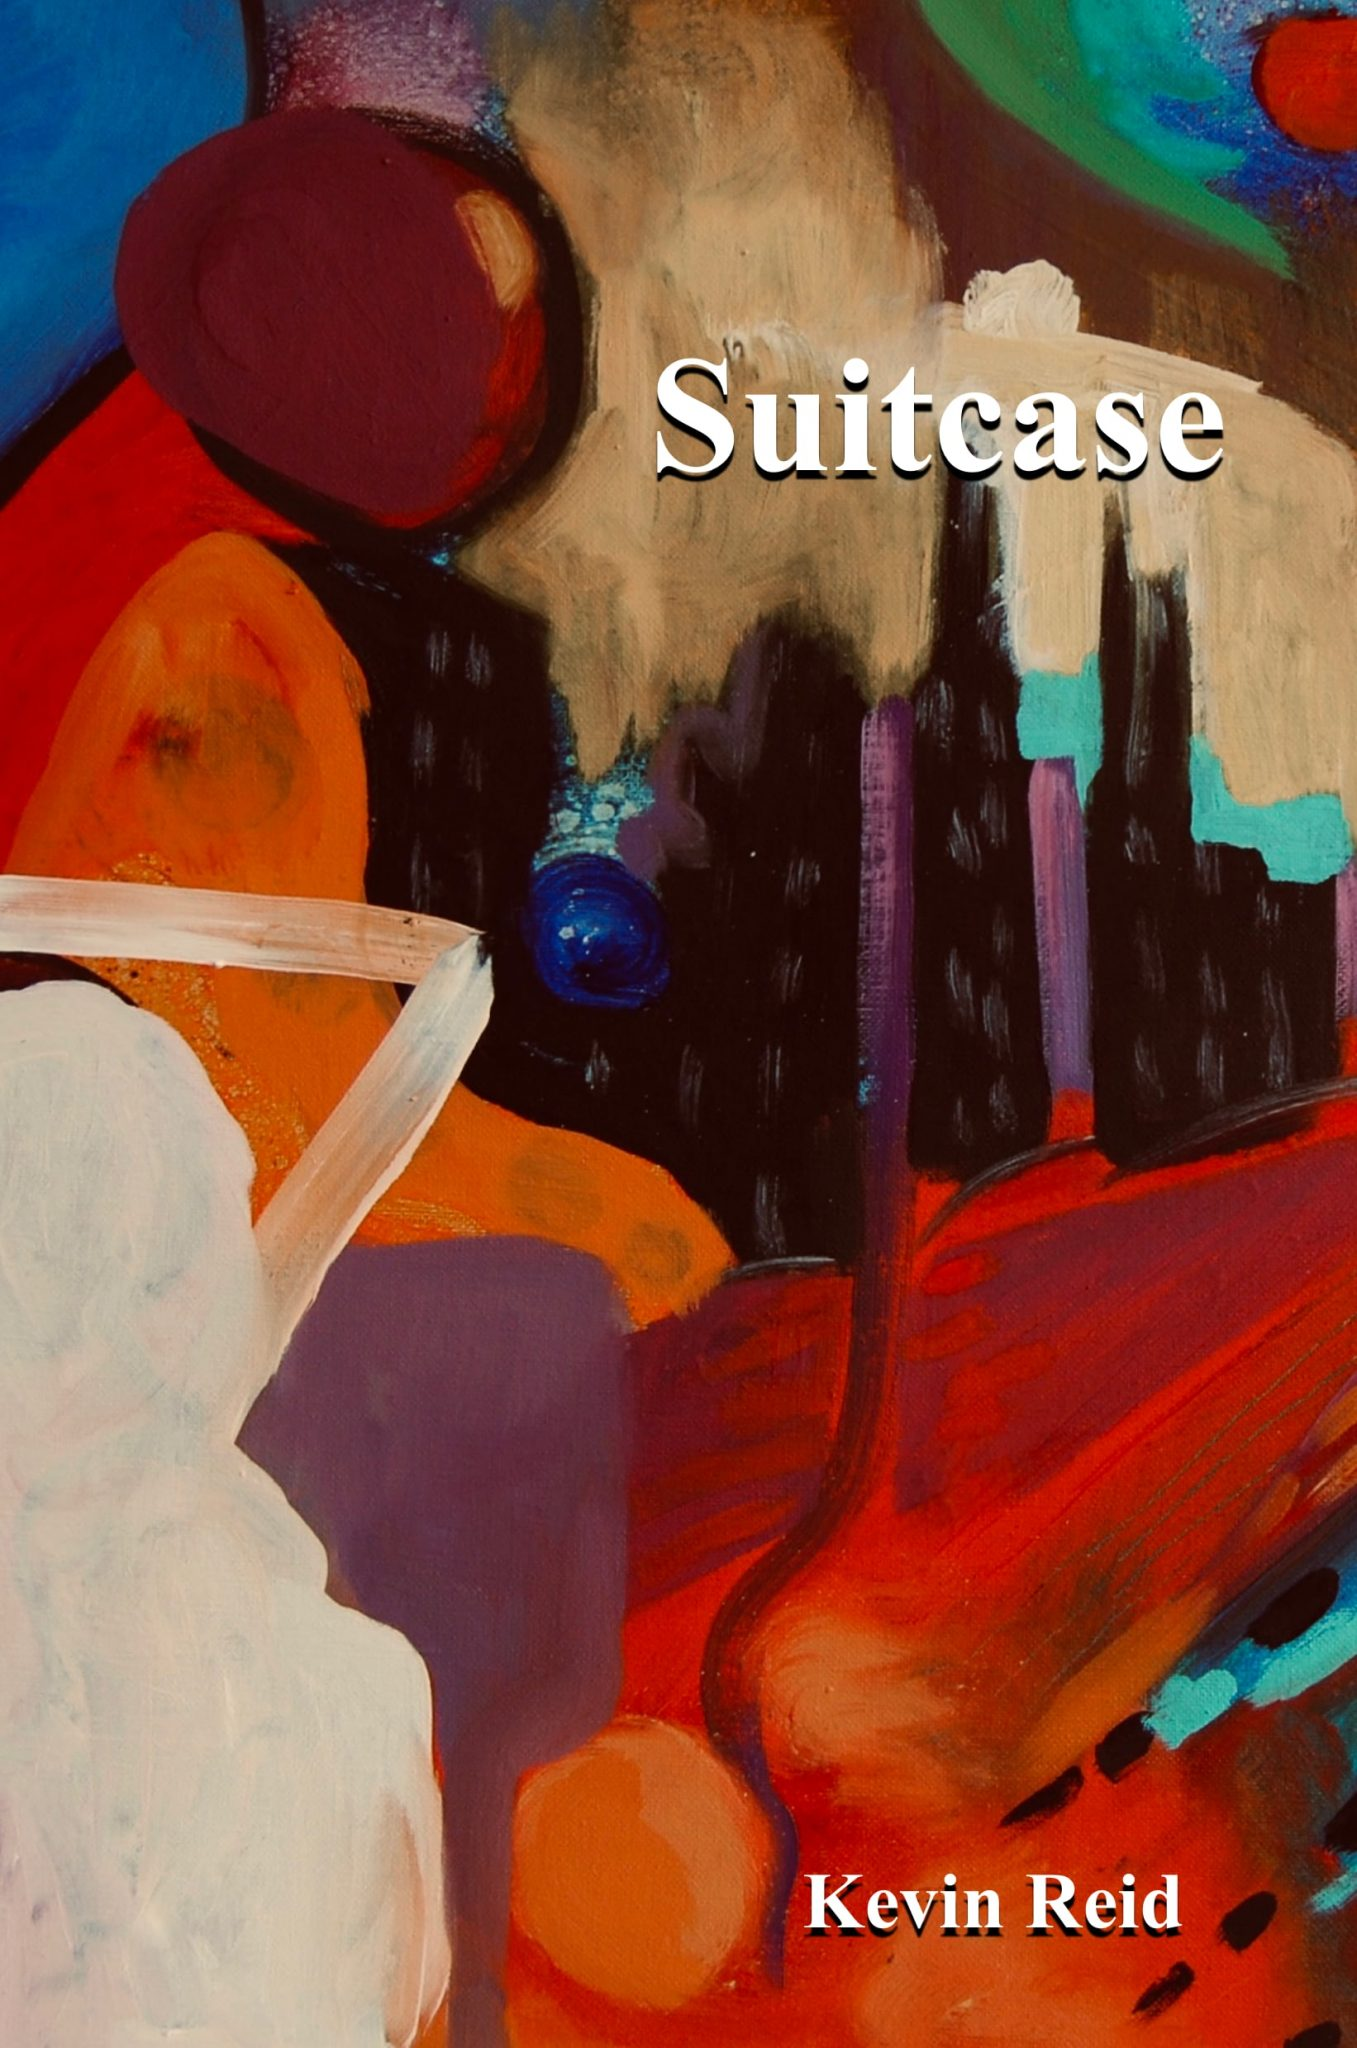 Suitcase by Kevin Reid